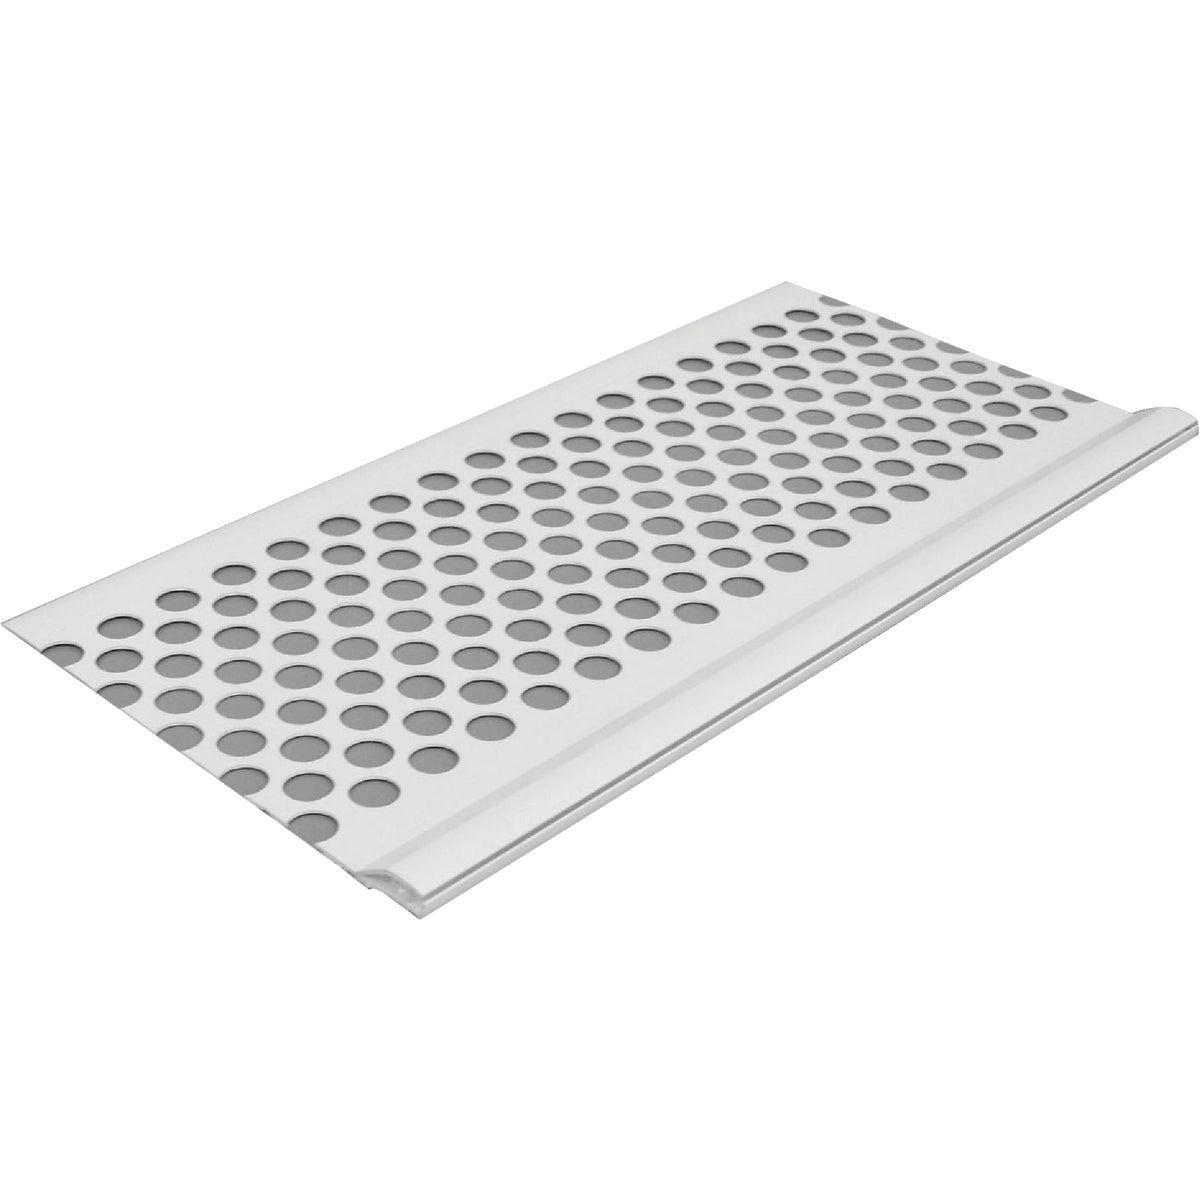 5' WHITE GUTTER GUARD - AW115 by Genova Products